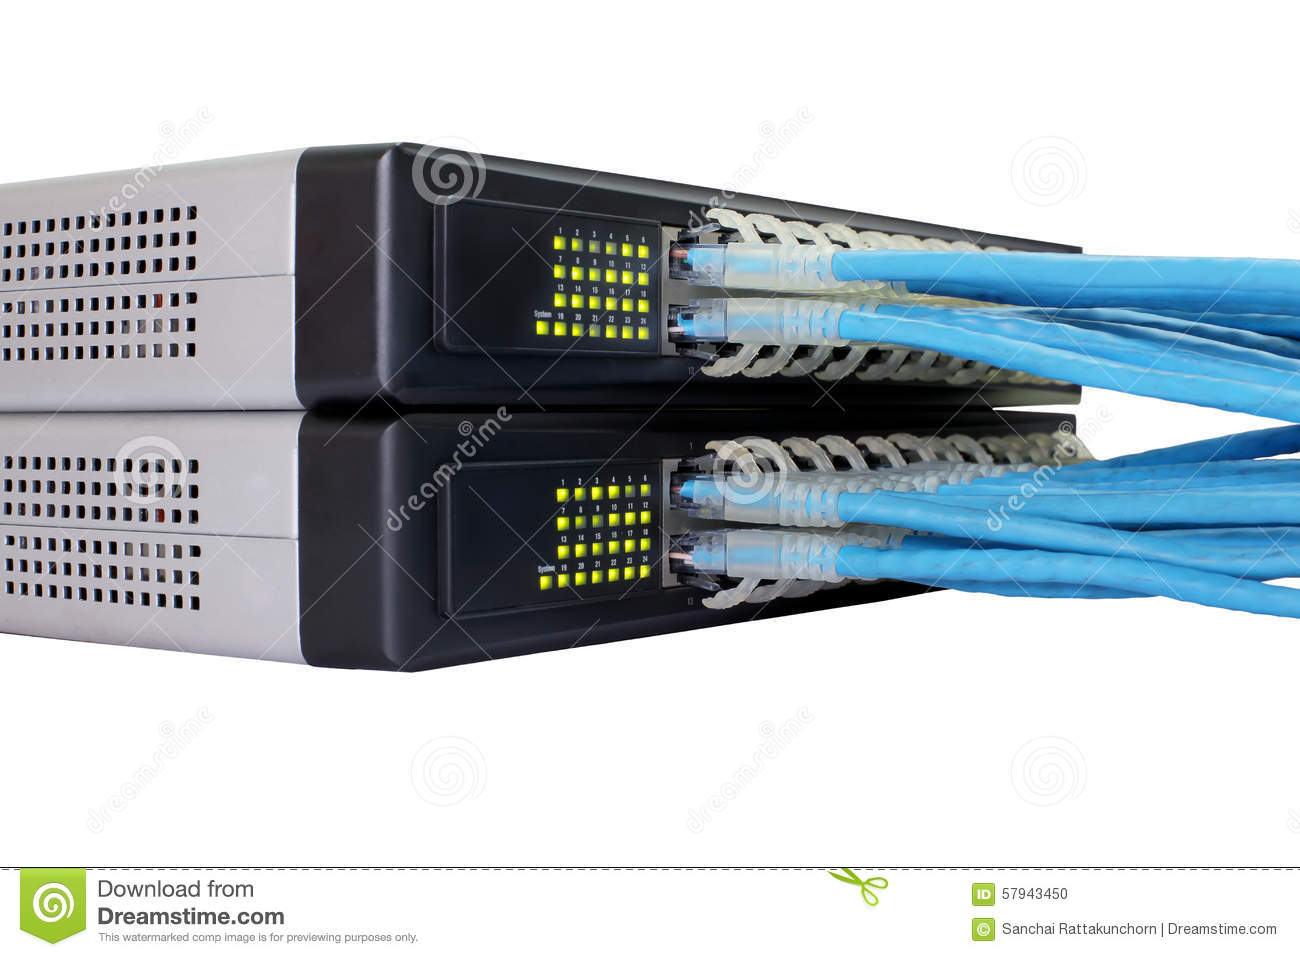 Rj45 Ethernet Cable Connected To Switch Stock Photo